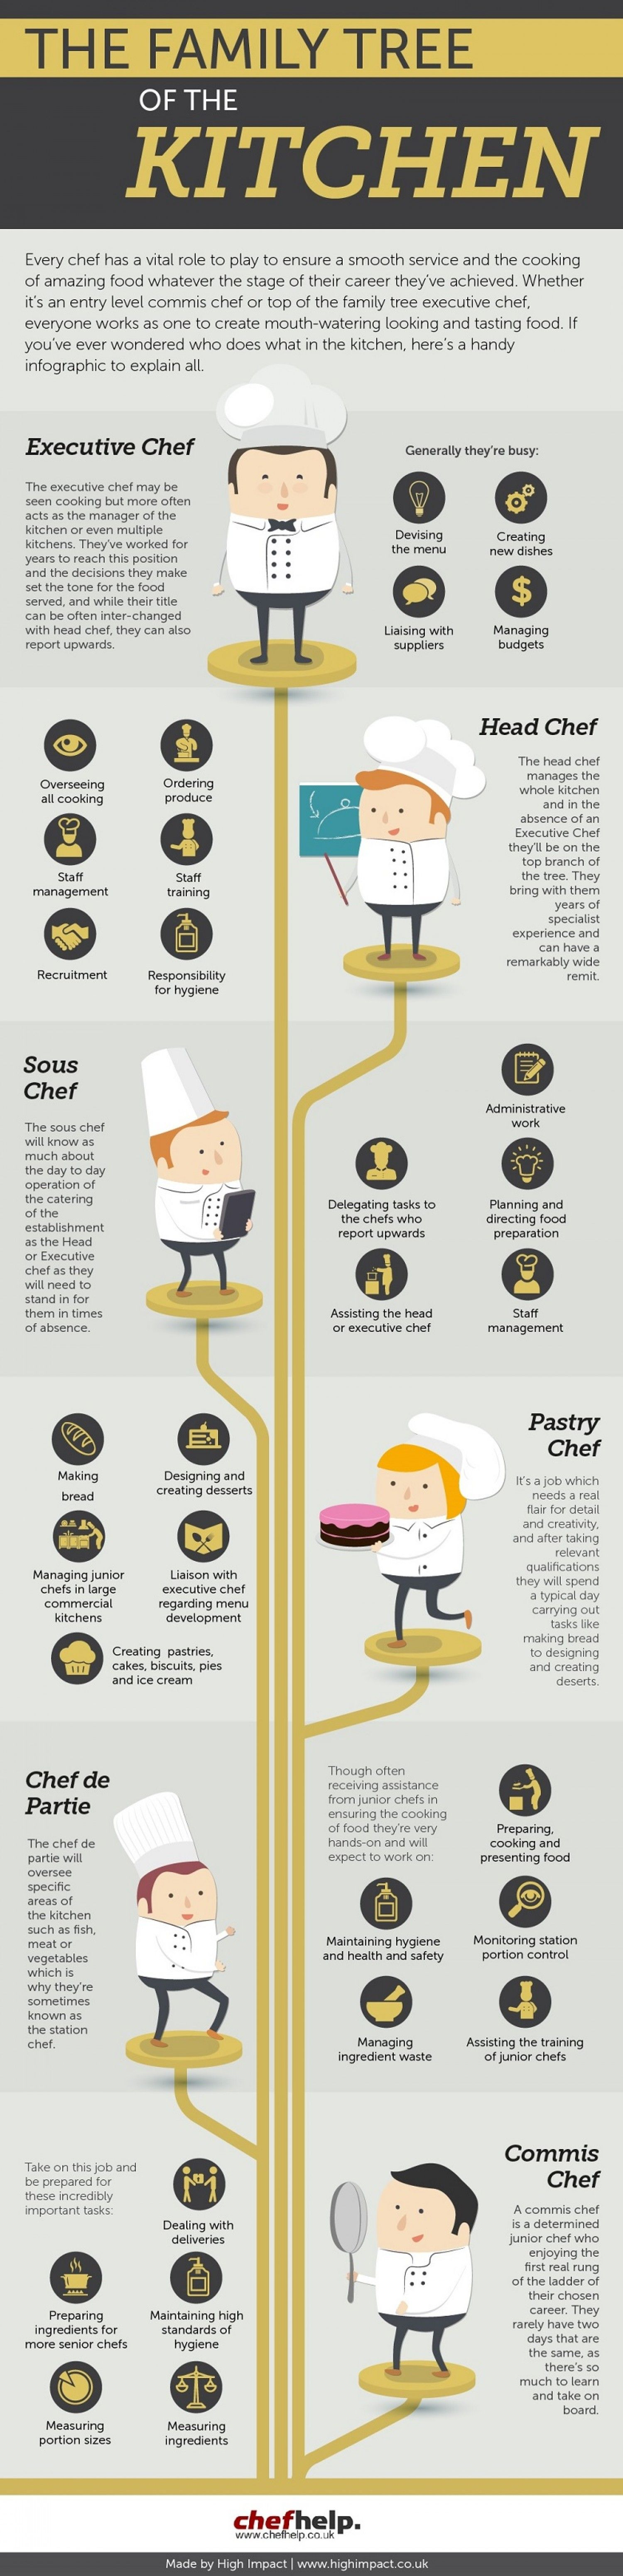 The Family Tree of the Kitchen | Family trees, Kitchens and Culinary ...